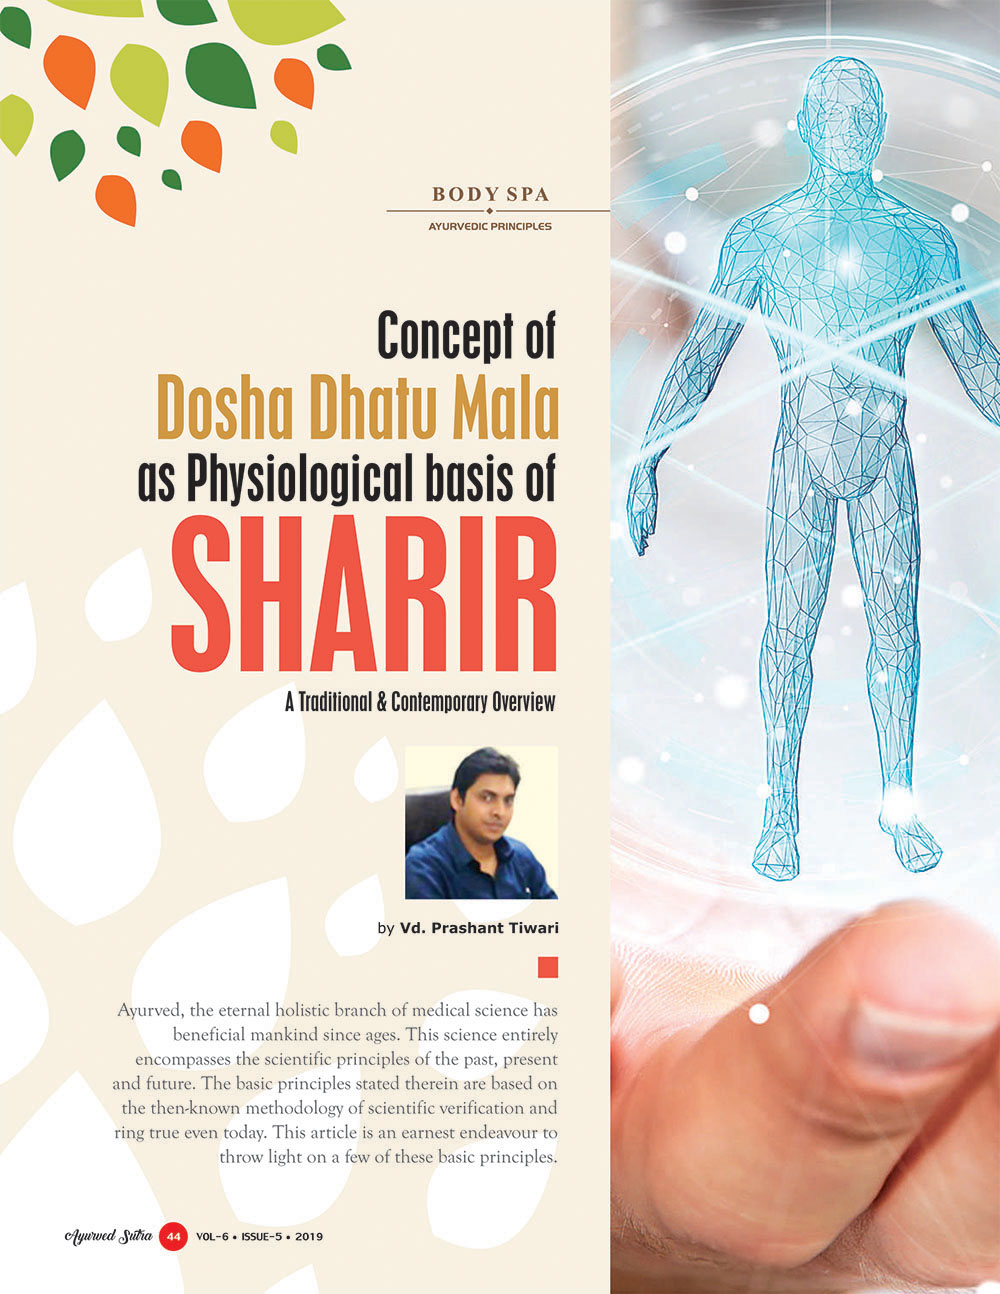 Ayurvedsutra Vol 06 issue 05 46 - Concept of Dosha Dhatu Mala as Physiological basis of Sharir